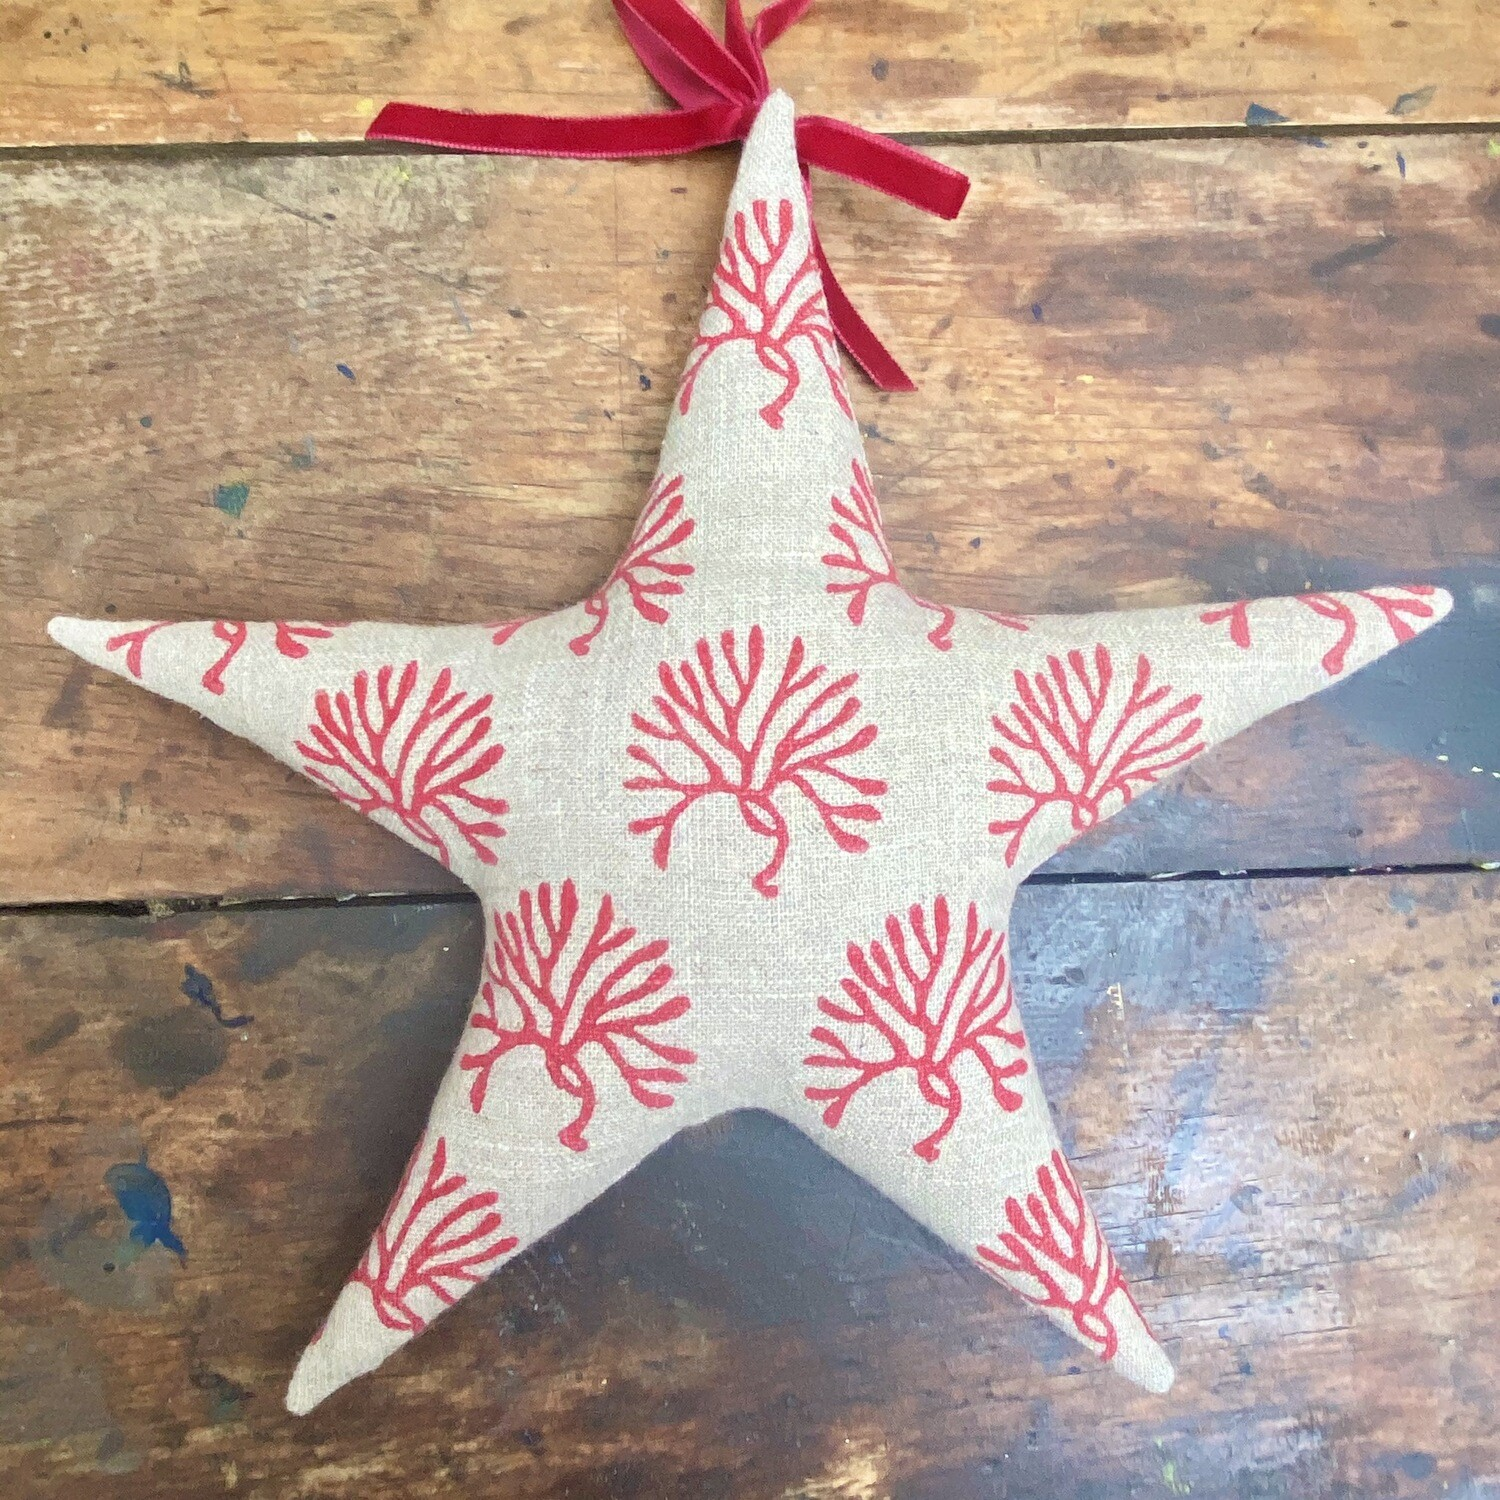 Fabric Star Decorations - Sea fingers